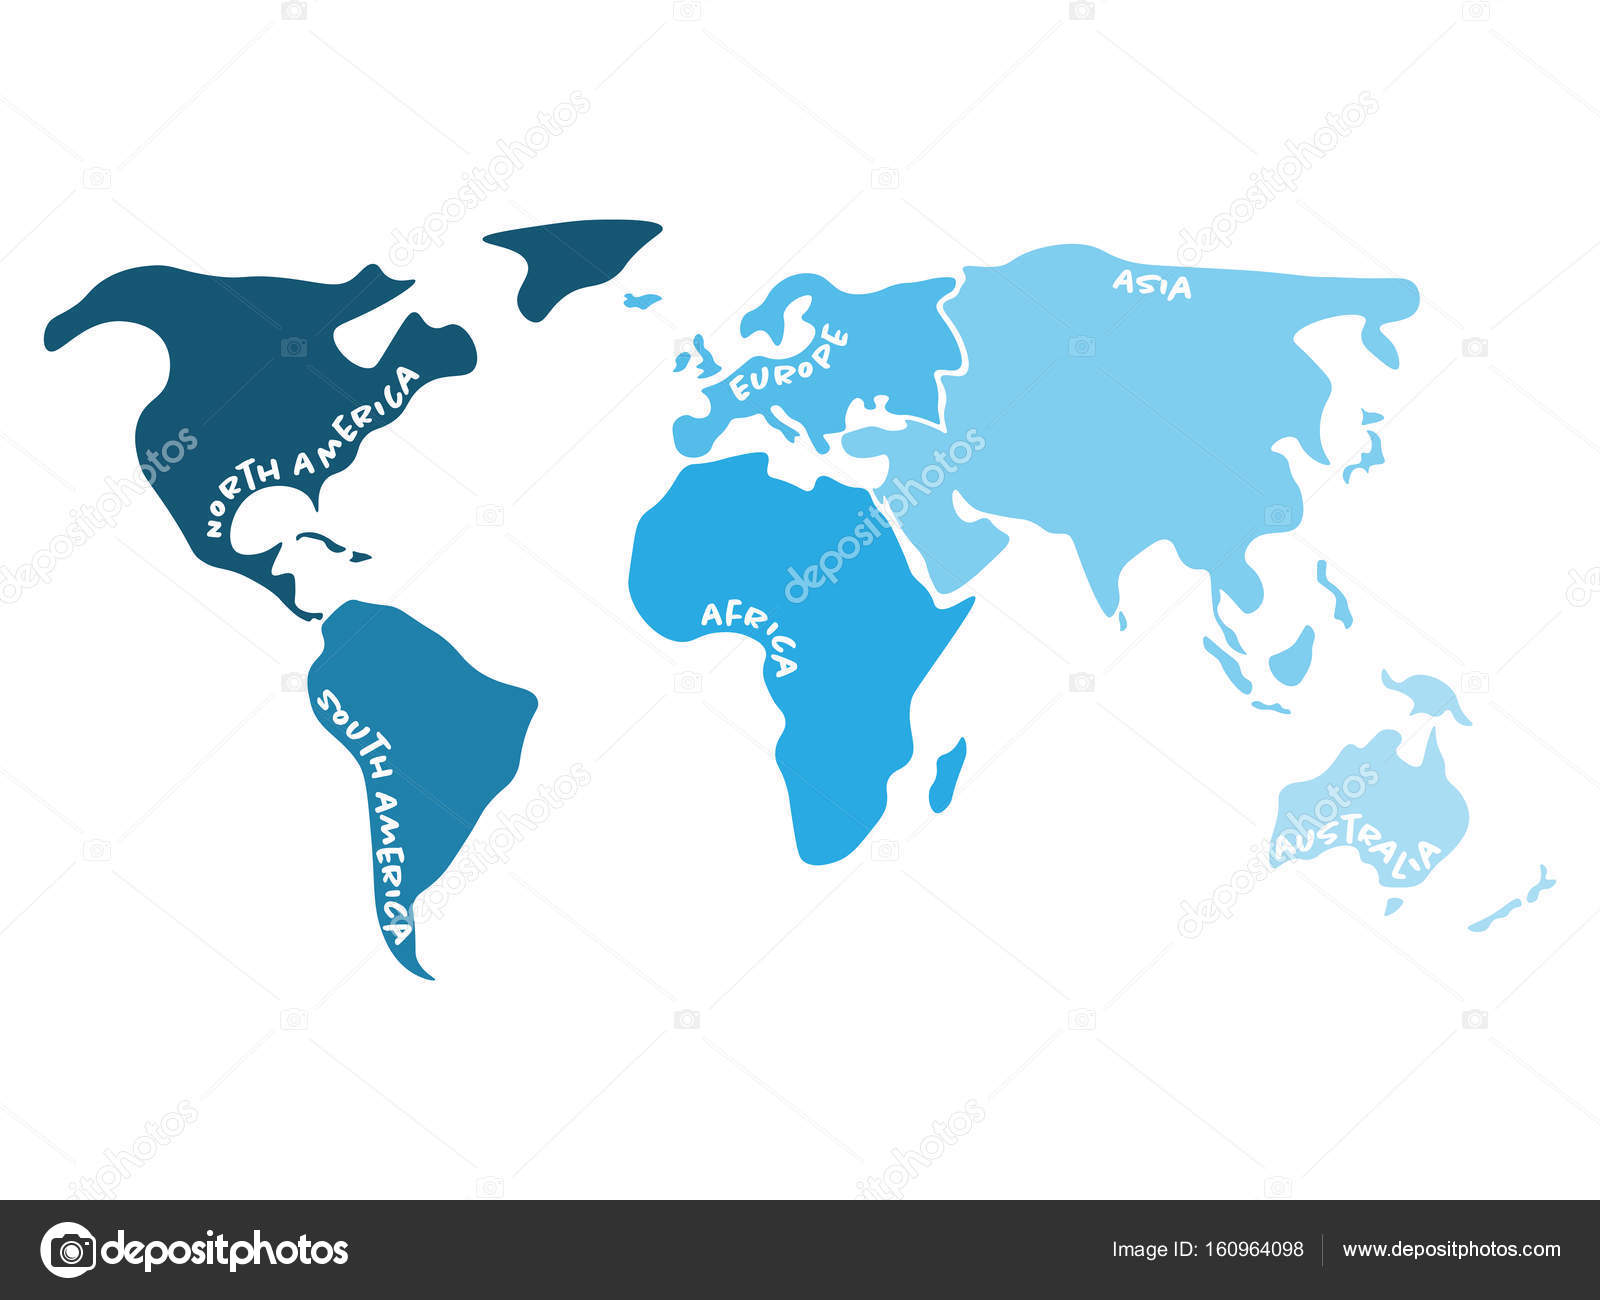 Multicolored world map divided to six continents in s north multicolored world map divided to six continents in different colors north america south america africa europe asia and australia oceania gumiabroncs Choice Image